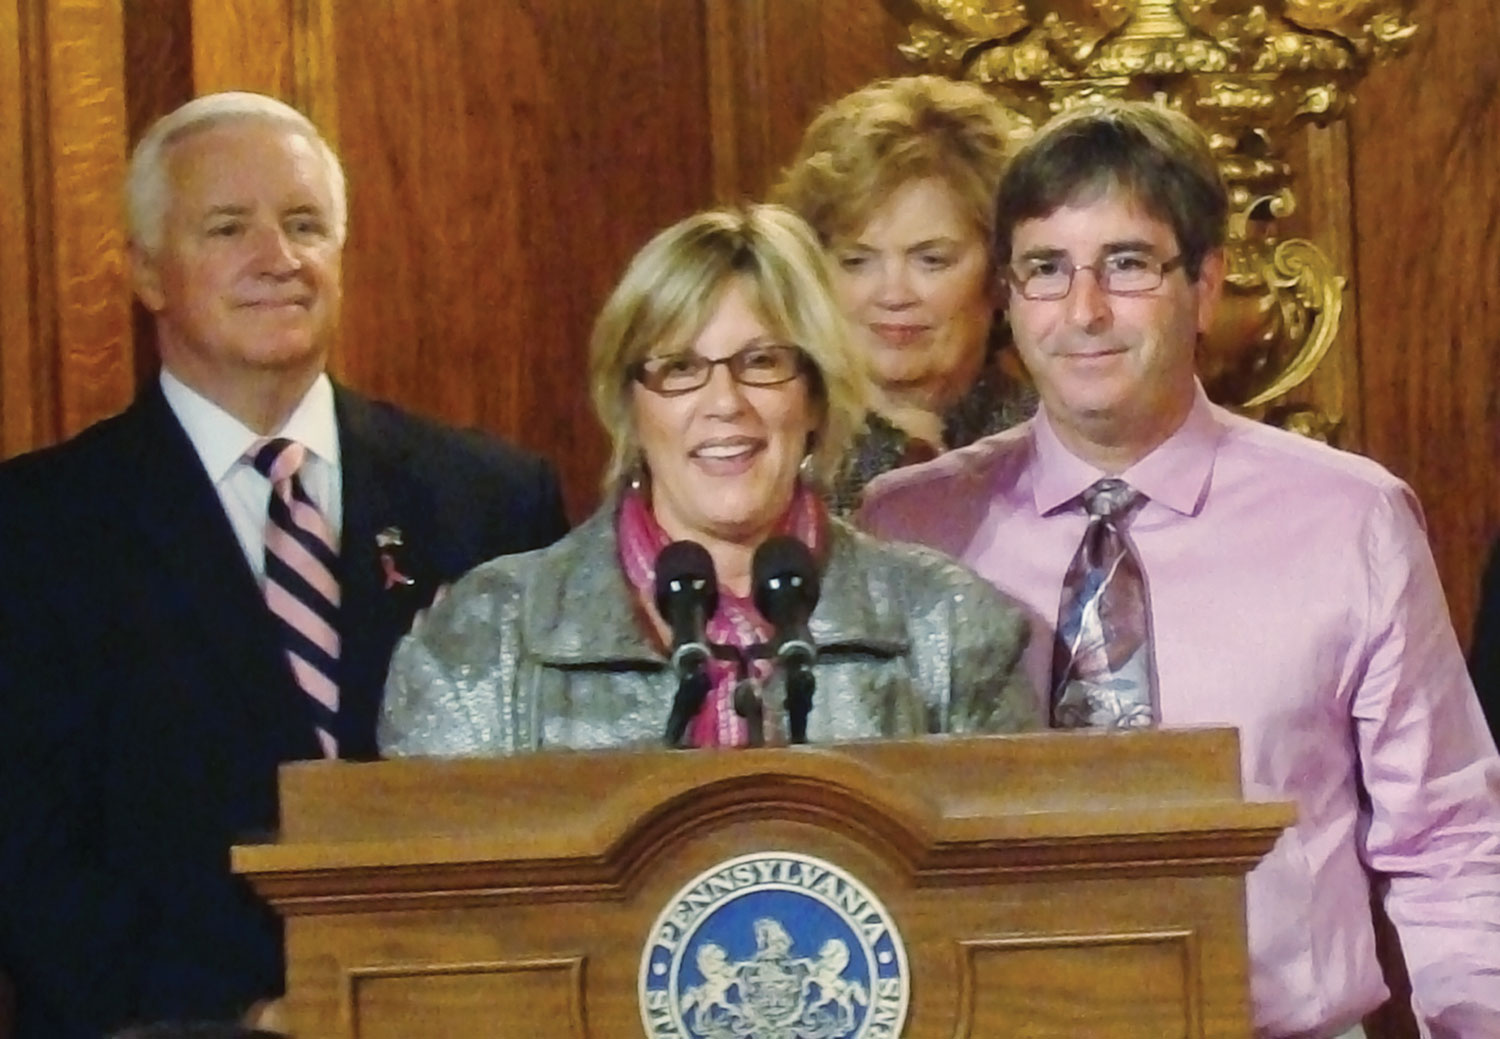 Backed by her husband, Greg, right, and former Gov. Tom Corbett, Spinello speaks at the signing of the Pennsylvania Breast Density Notification Act. Photo courtesy of the Pennsylvania Breast Cancer Coalition.